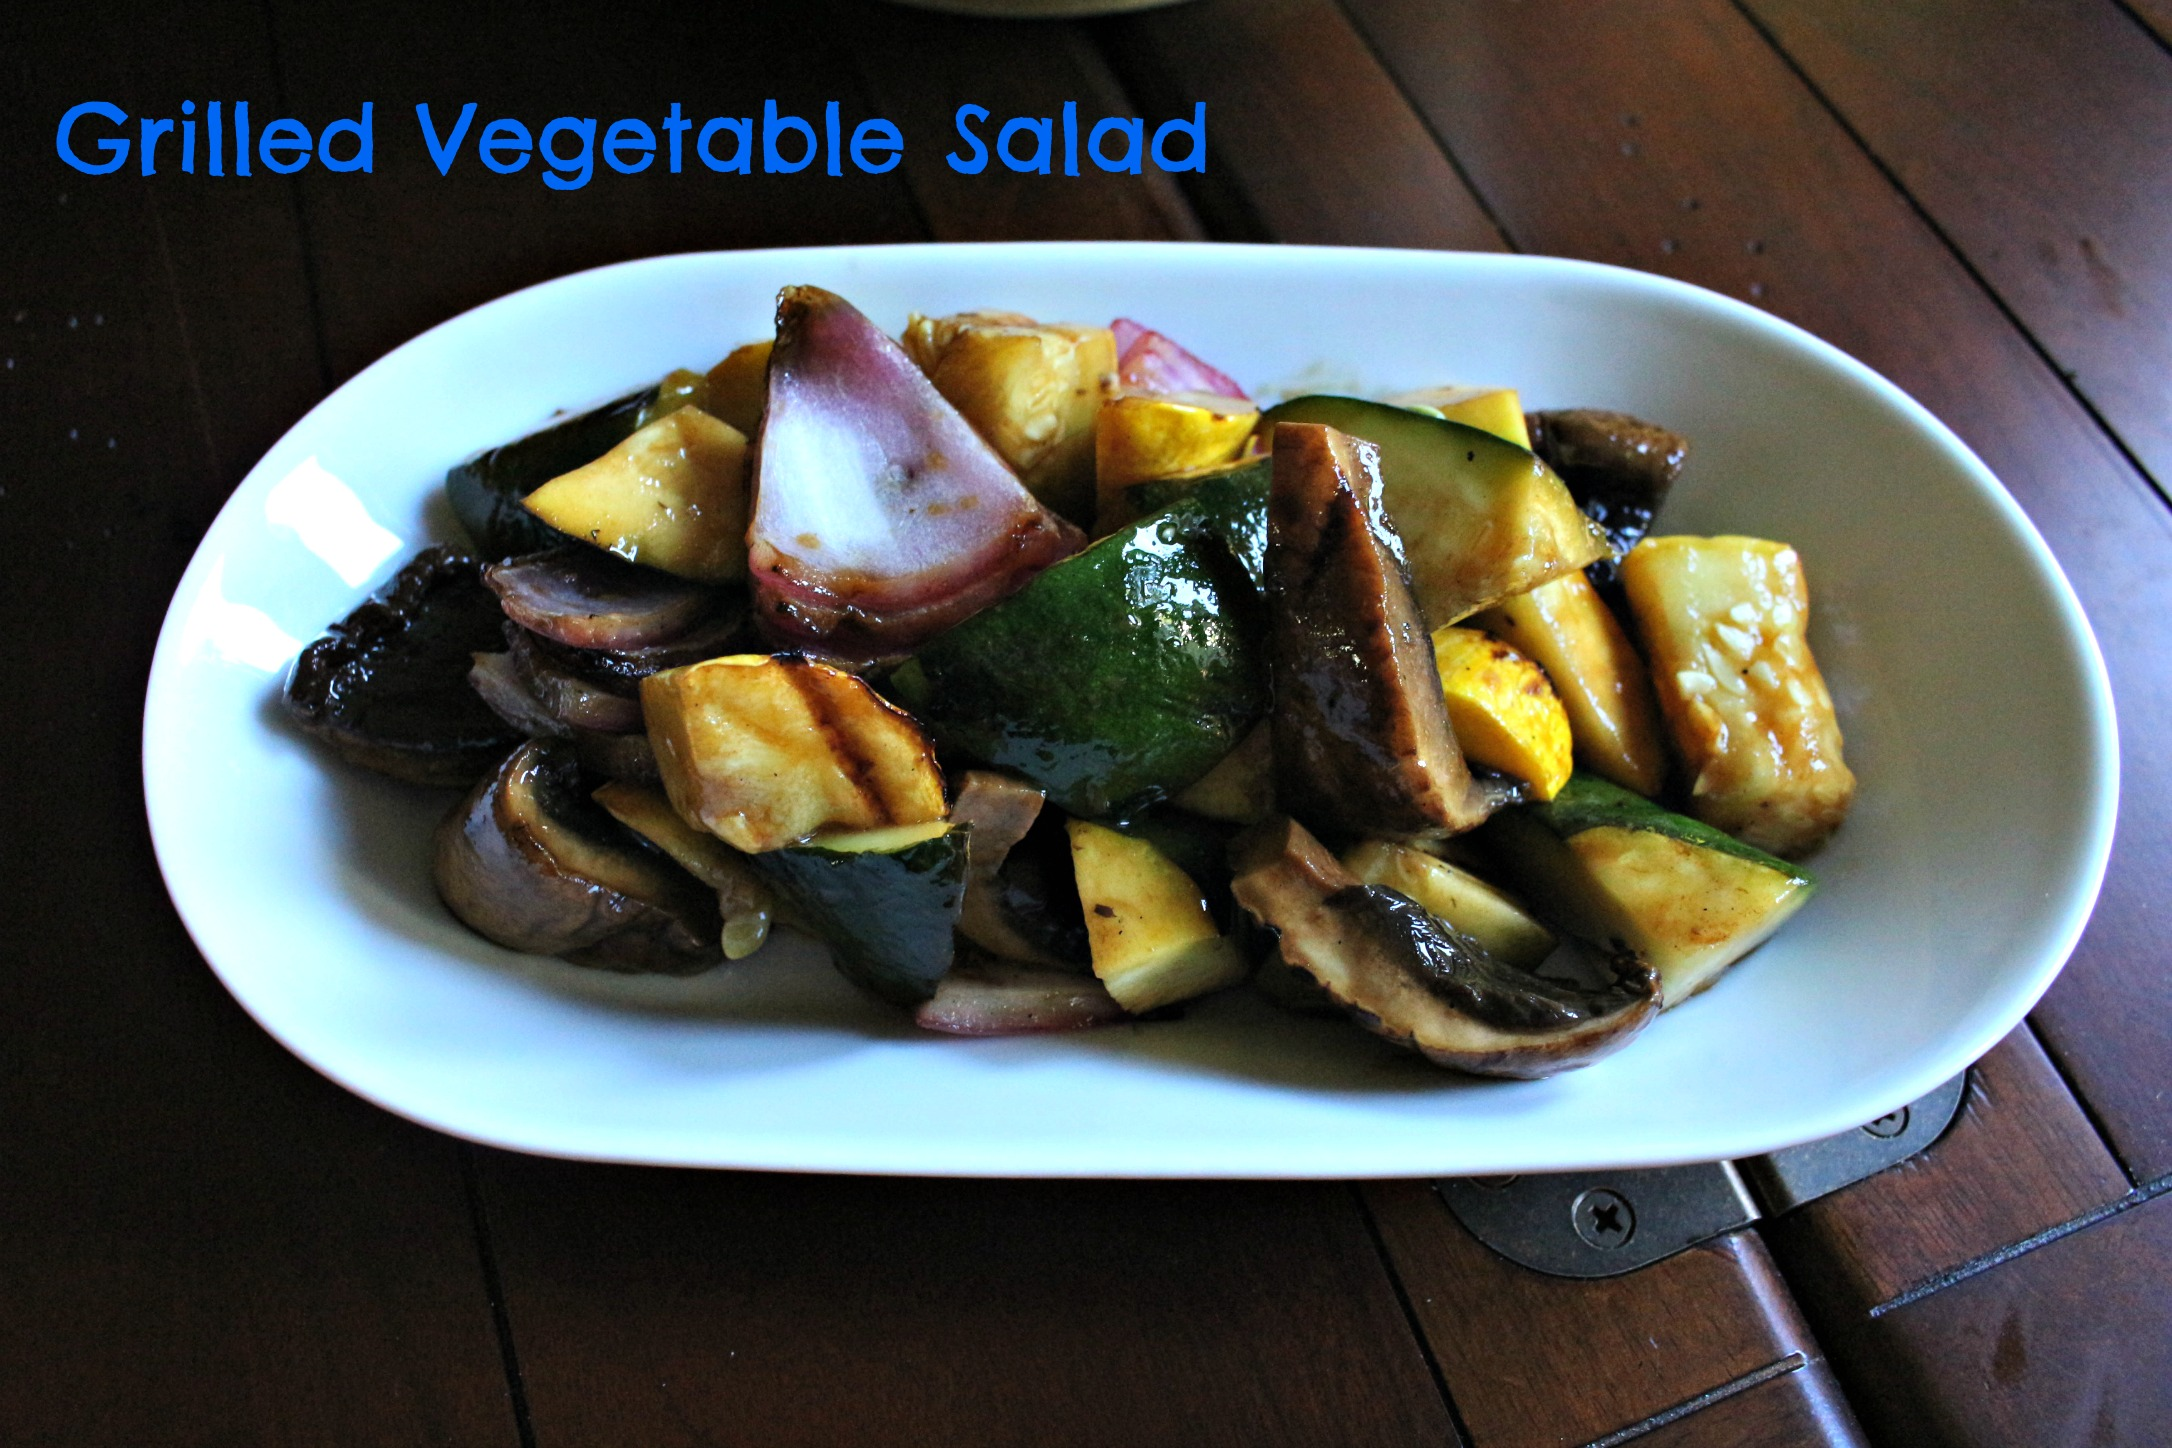 Grilled Vegetable Salad - By the Pounds